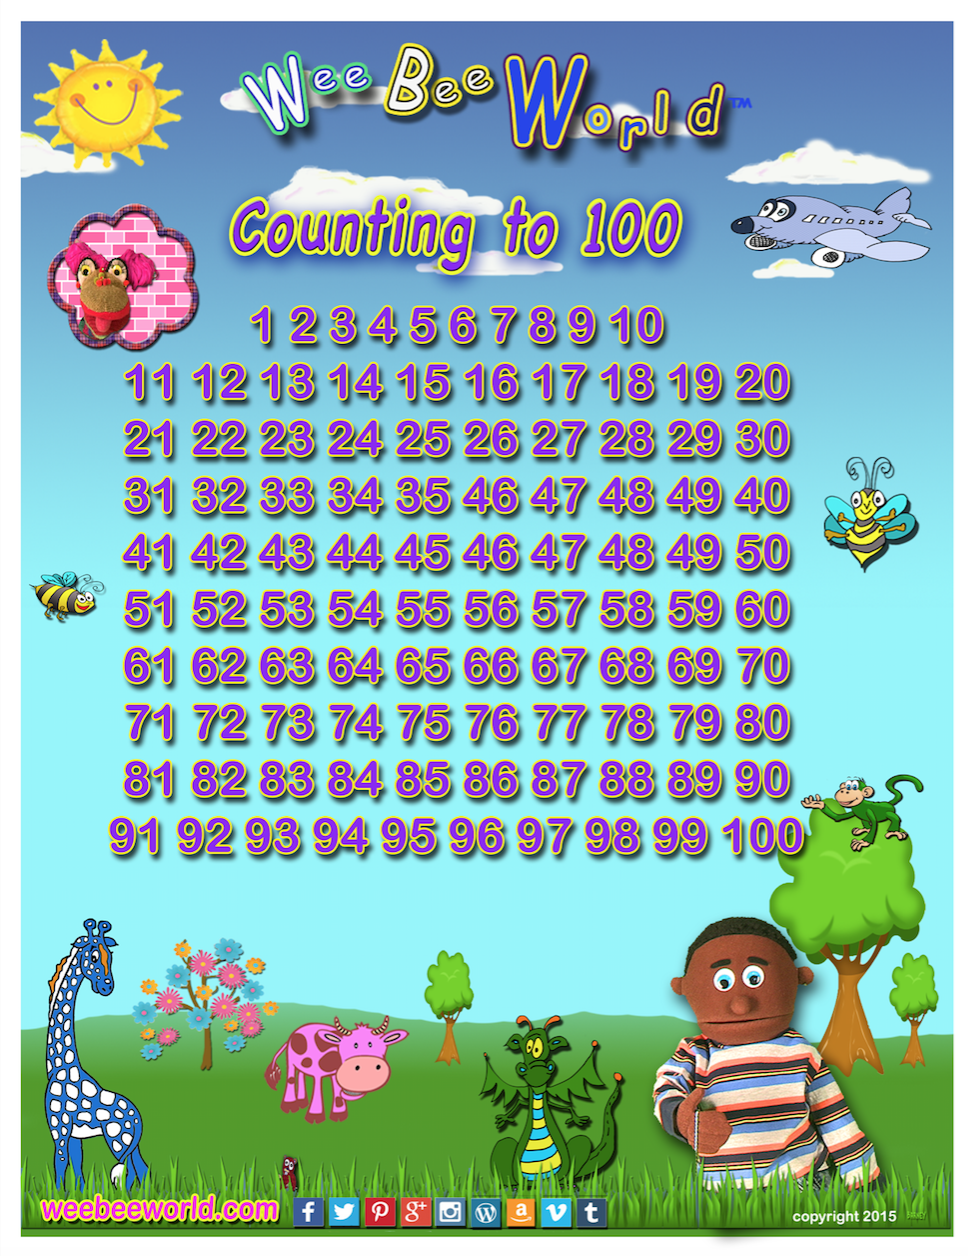 Count to 100 Mini Poster